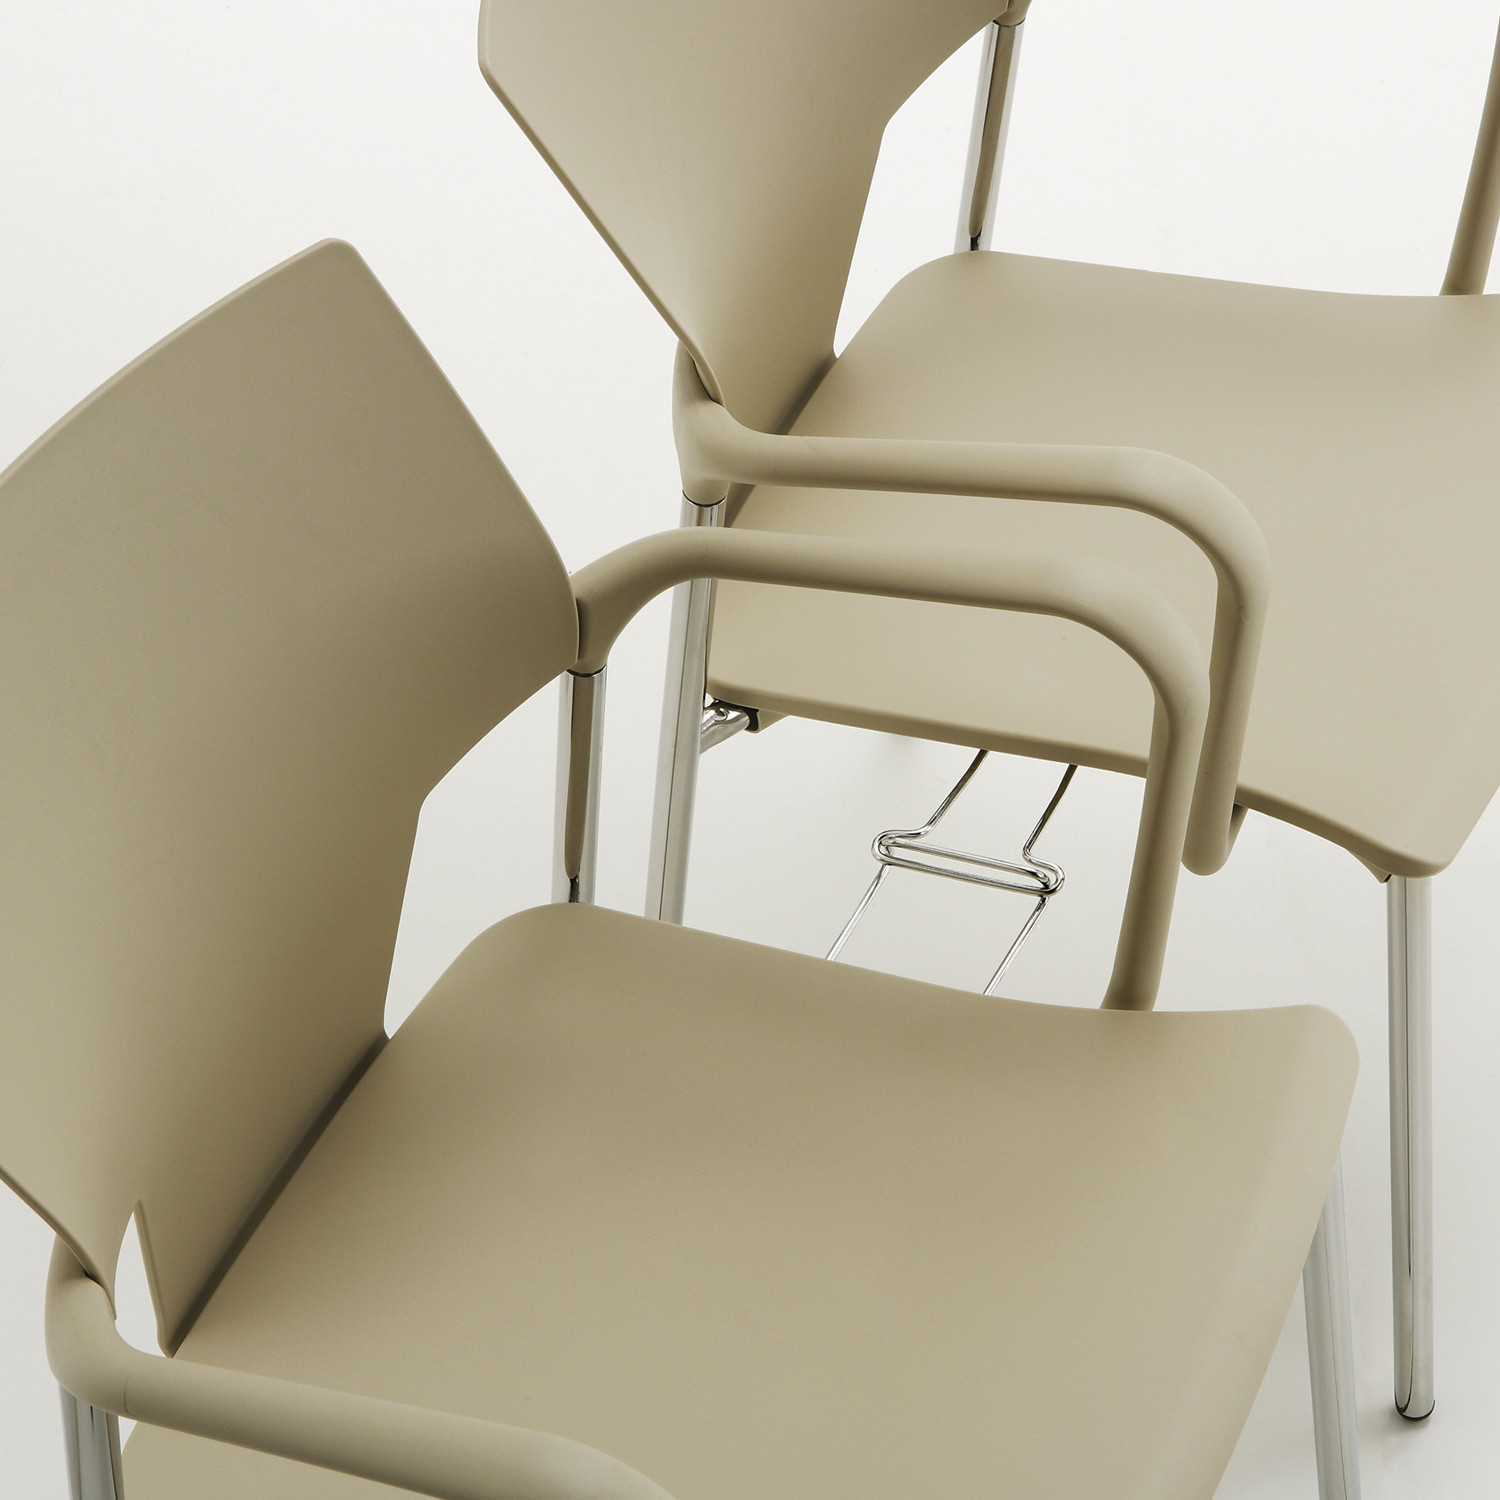 Ikon Chairs Detailled